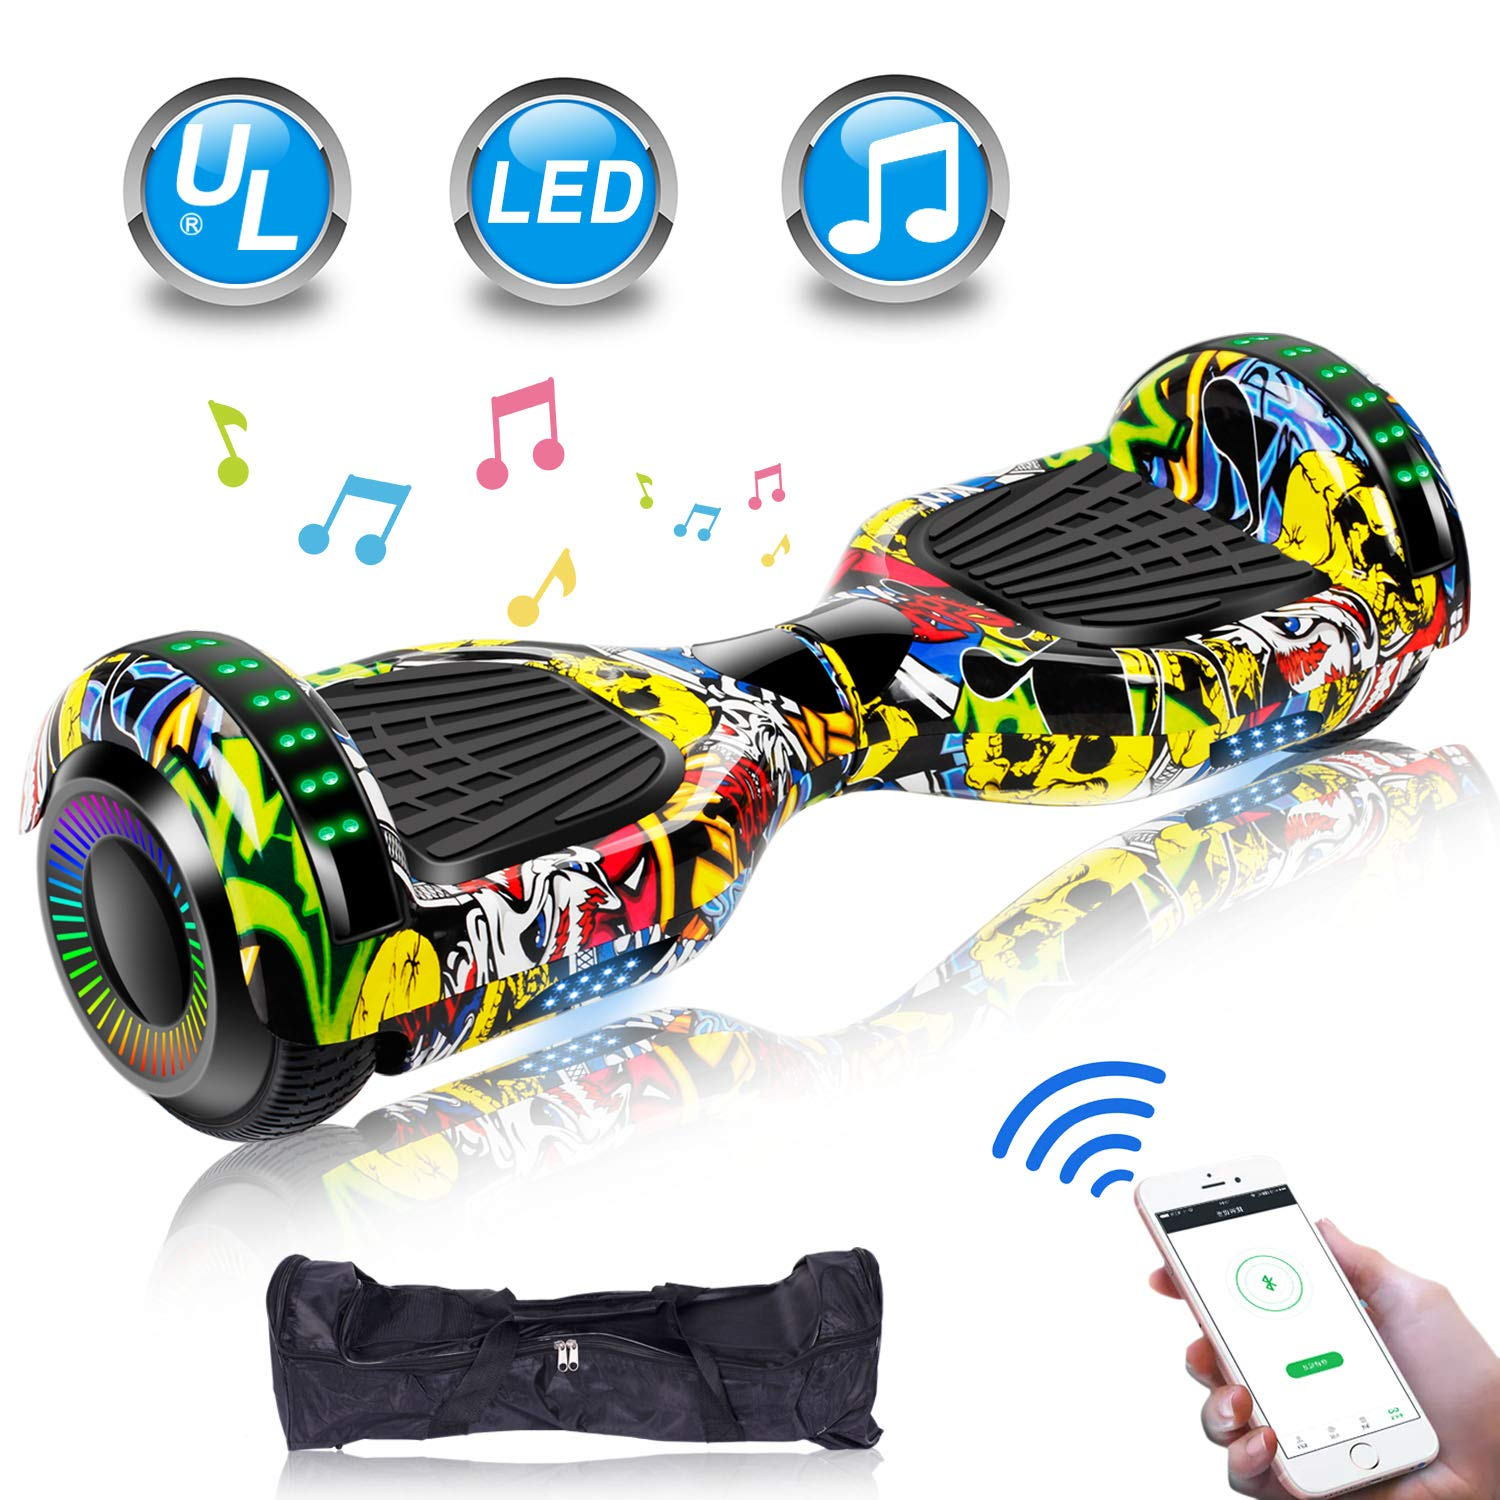 UNI-SUN 6.5'' Hoverboard for Kids, Two Wheel Electric Scooter, Self Balancing Hoverboard with Bluetooth and LED Lights for Adults, UL 2272 Certified Hover Board(Ultimate X-Graffiti